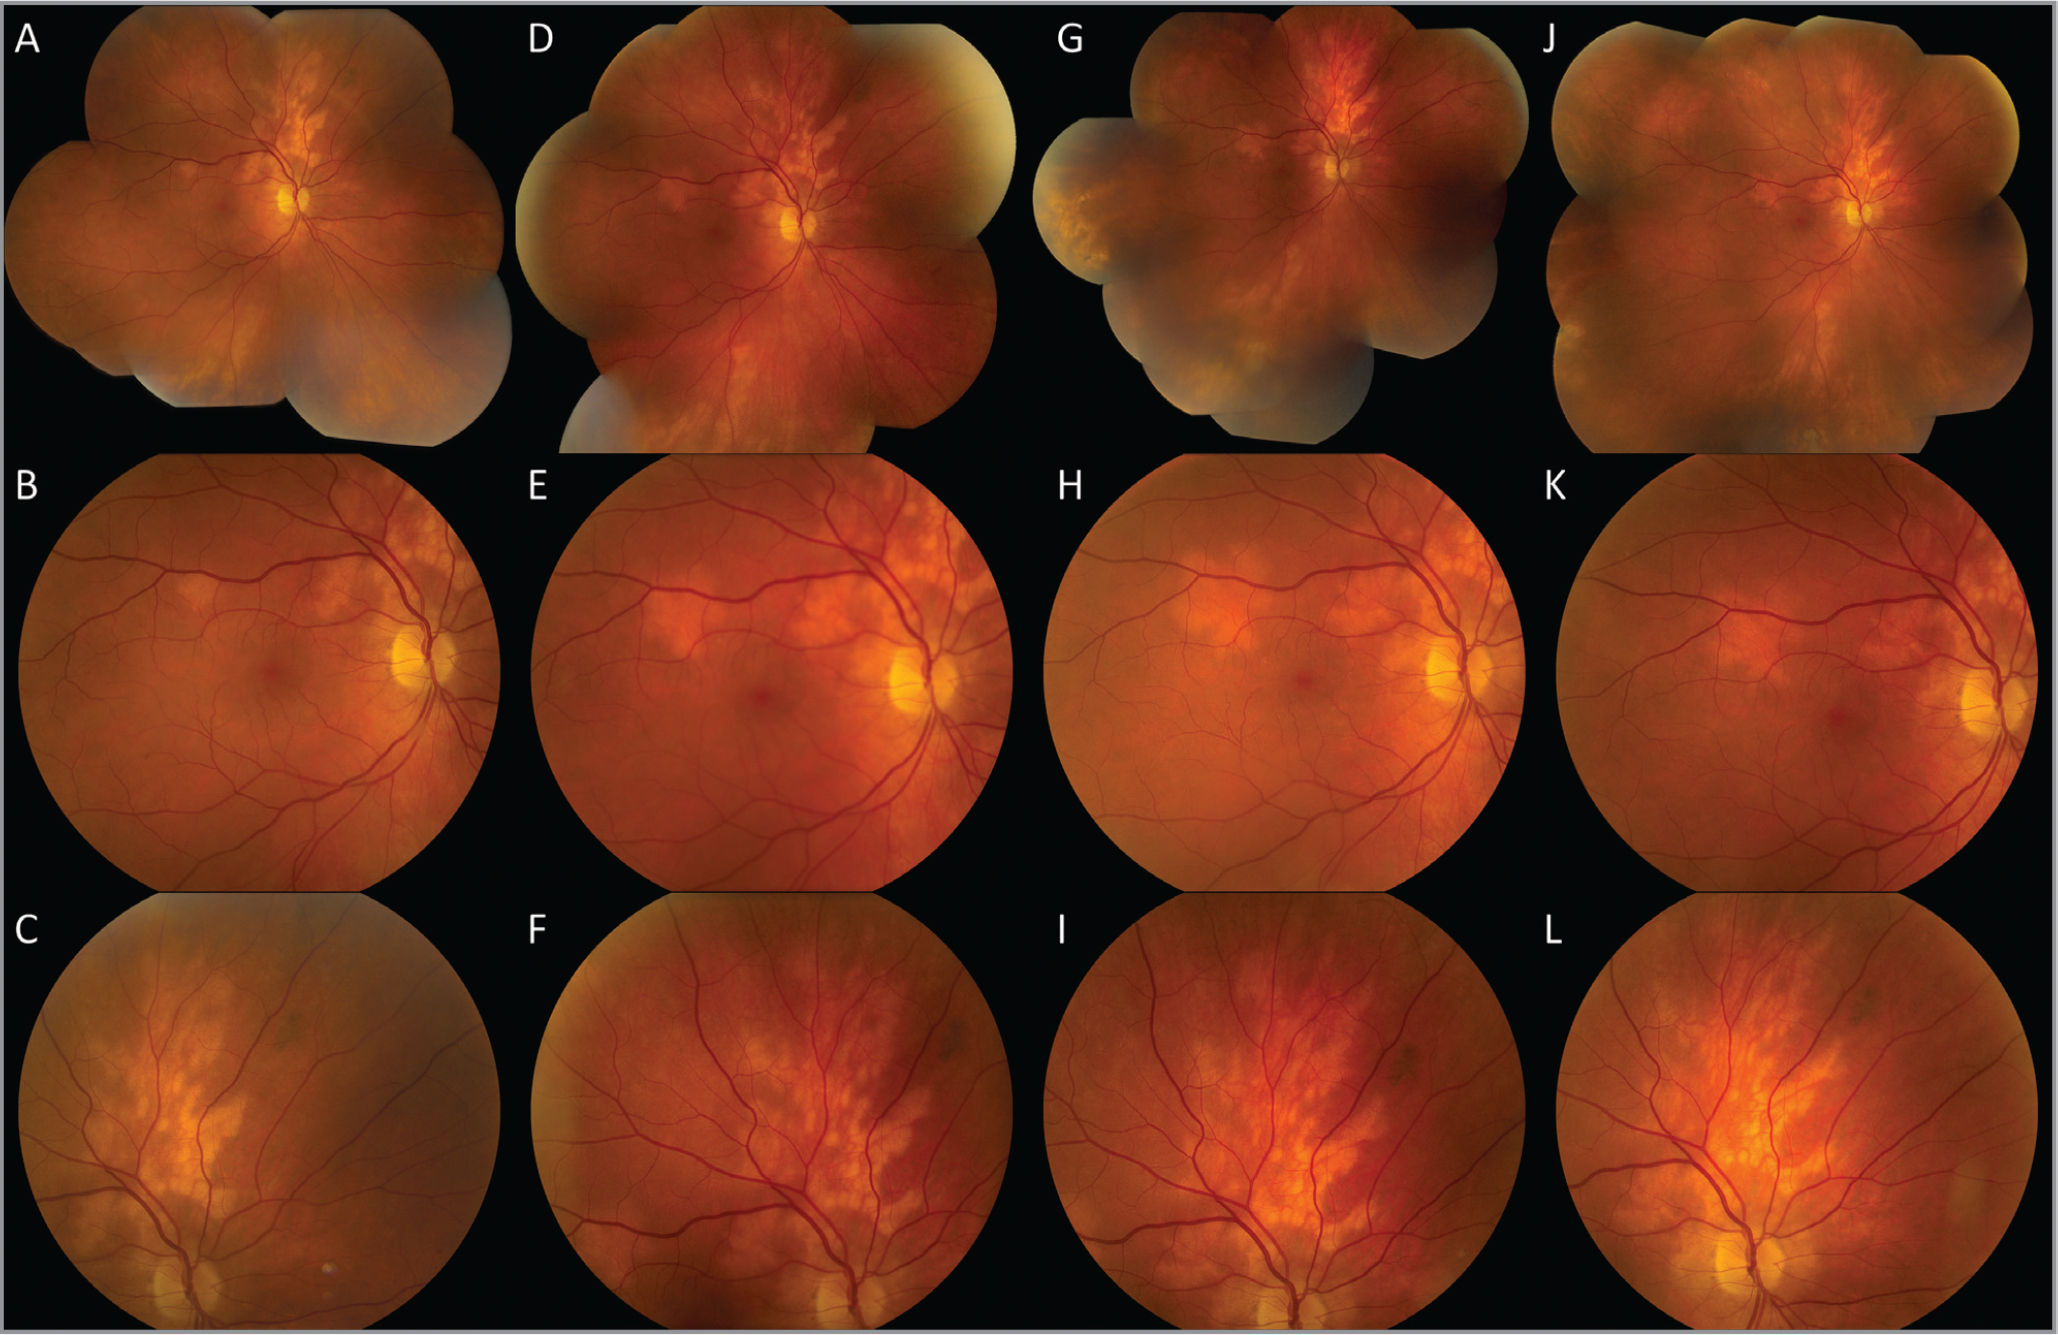 Color fundus photos at the time of presentation (A, B, C), 19 months later (D, E, F), 27 months later (G, H, I), and 6 weeks after posterior sub-Tenon's triamcinolone acetonide (J, K, L). Hypopigmented choroidal lesions can be seen superior to the disc and along the superotemporal arcade. Over time, the size of the lesions slowly increased, most easily seen with examination of the lesion along the superotemporal arcade (B, E, H). Following steroid treatment, the lesions appeared atrophic (J, K, L) and exhibited no further growth.